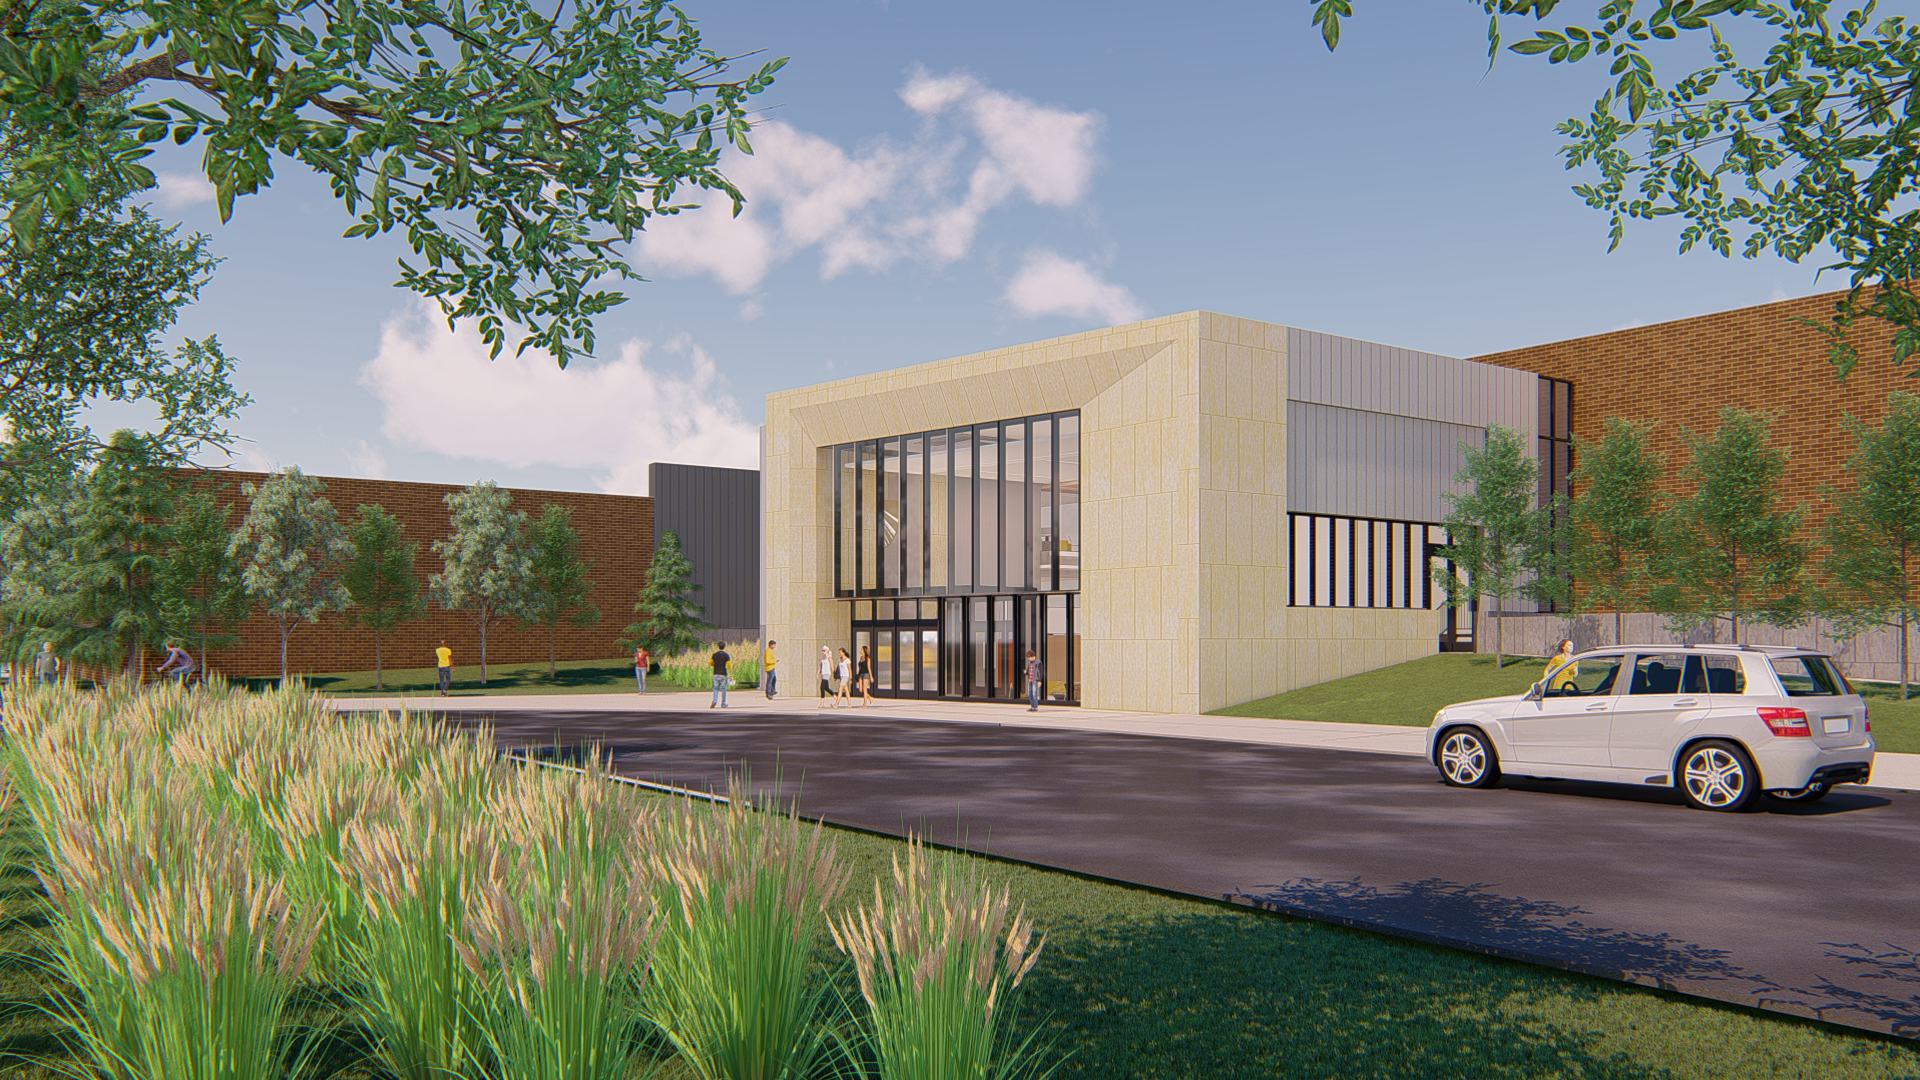 Exterior rendering of the Lund Center's entry.